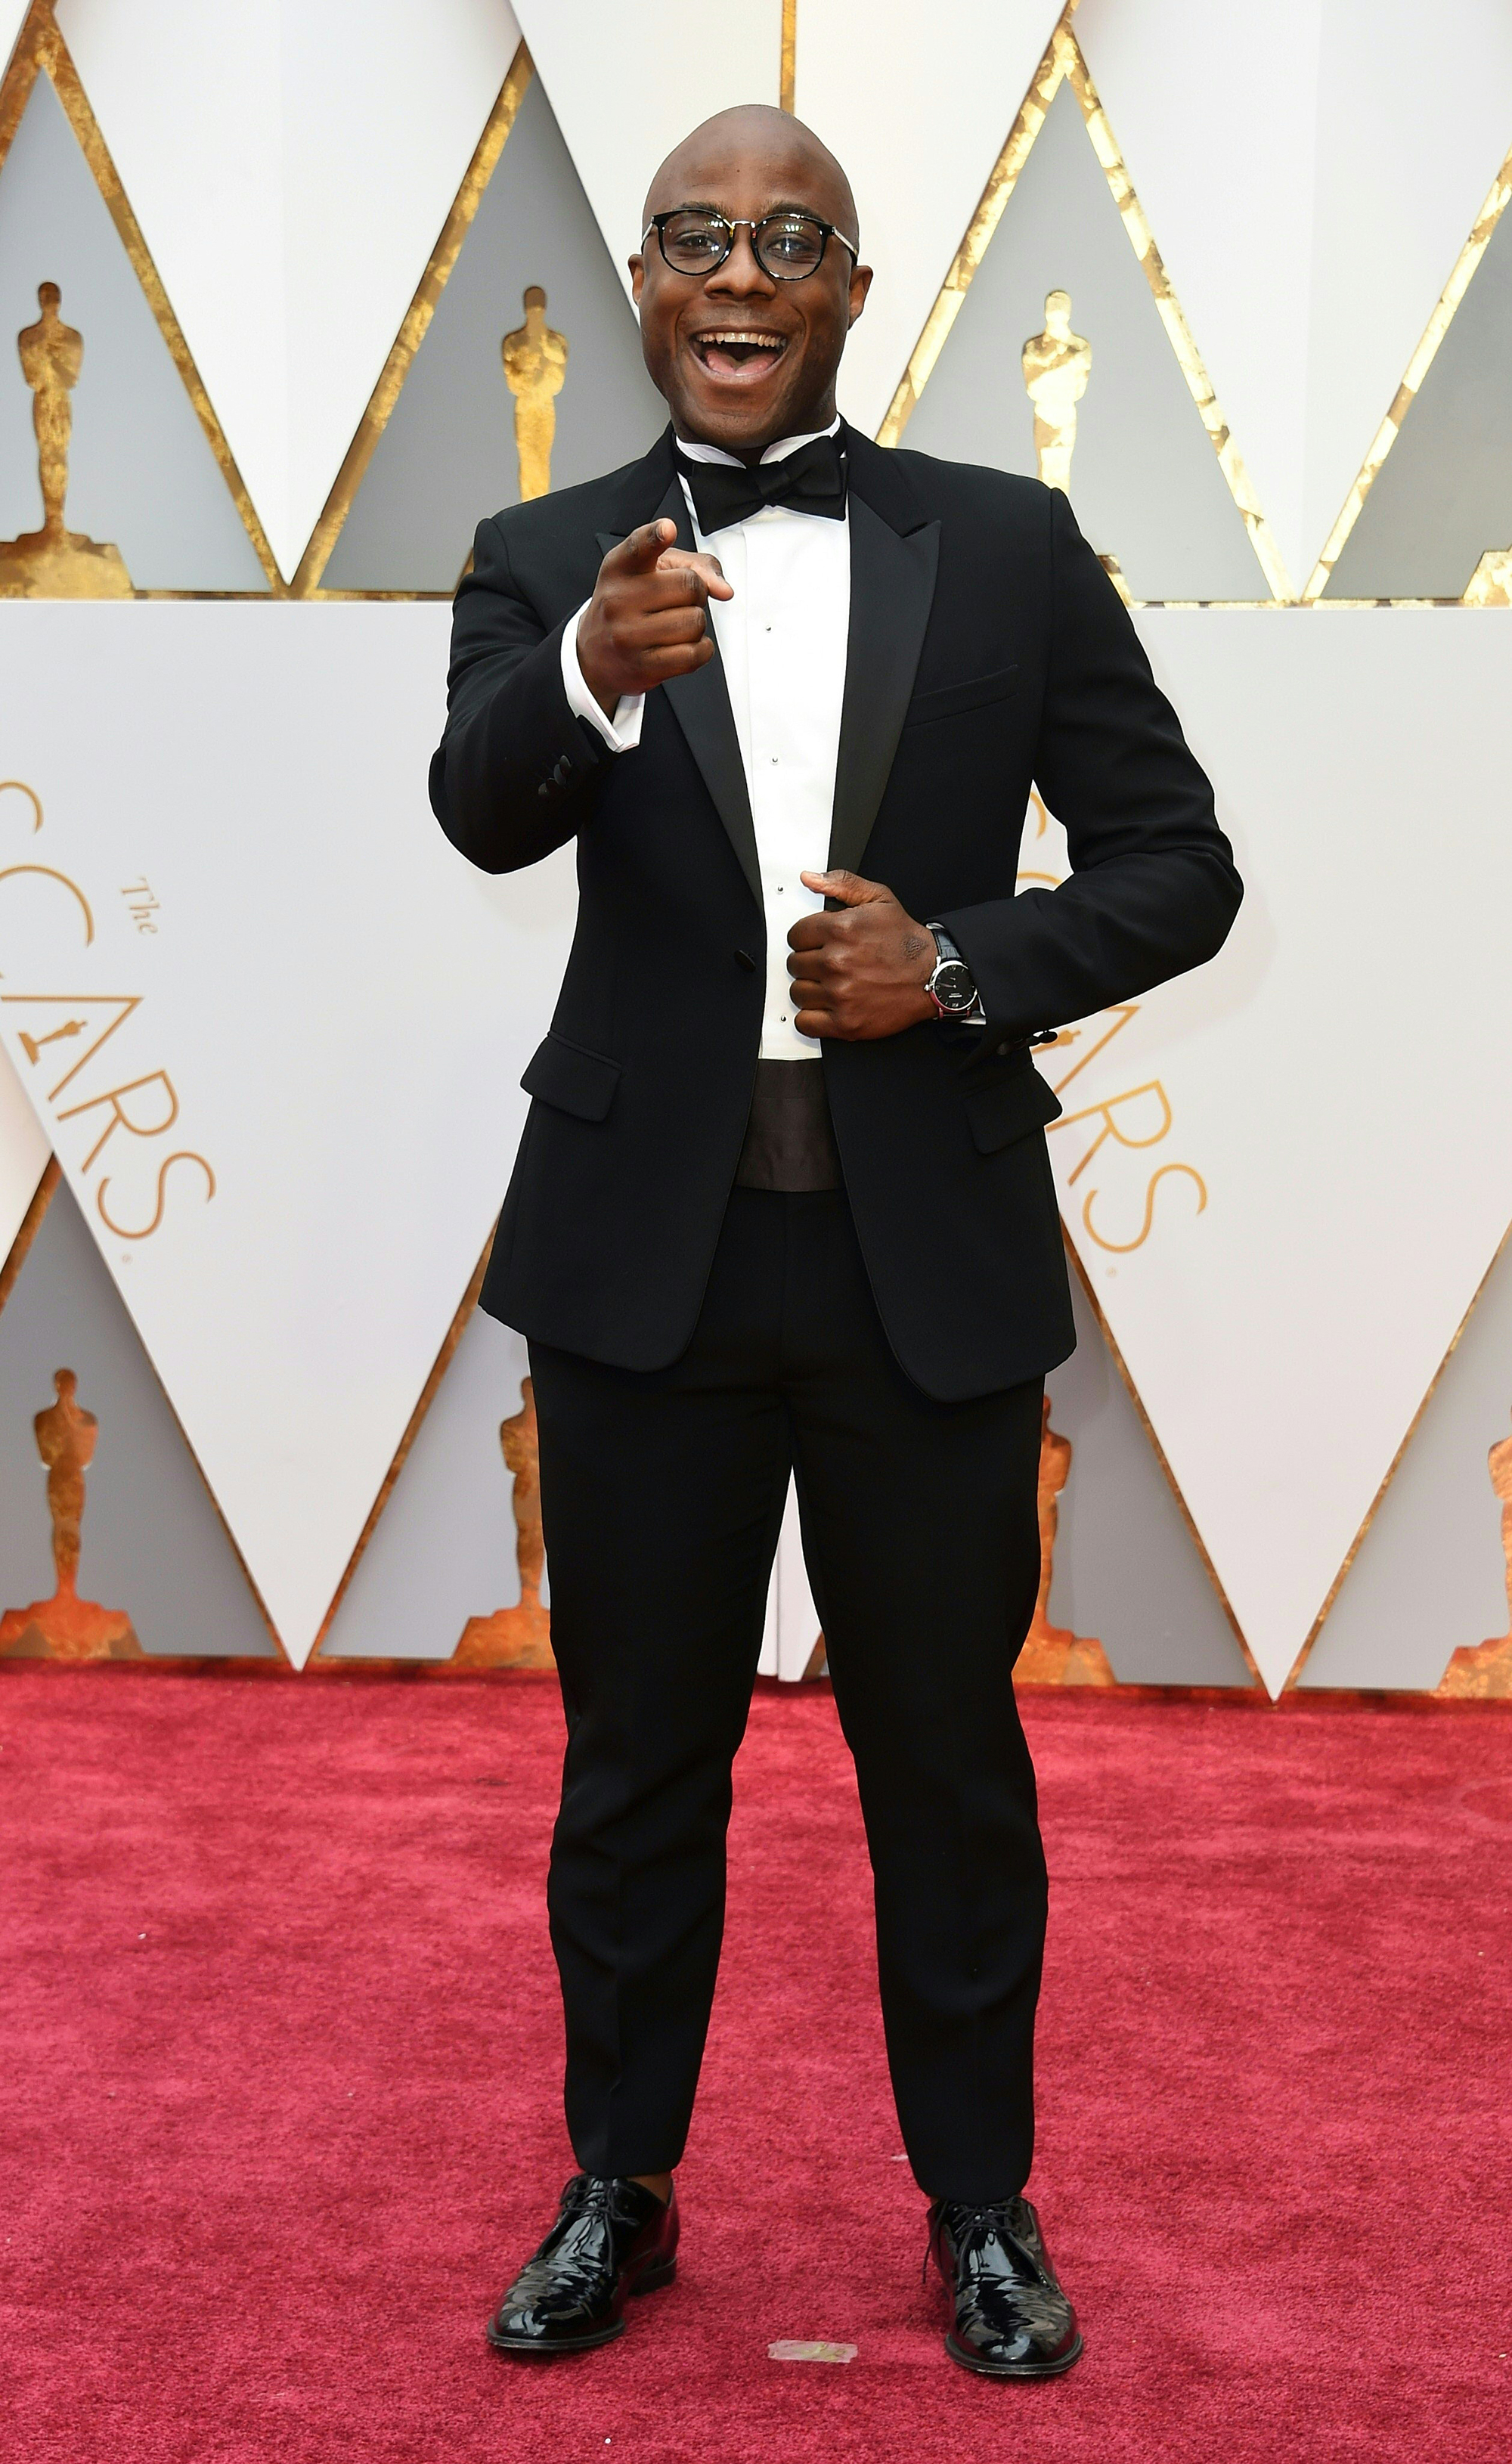 Barry Jenkins on the red carpet for the 89th Oscars, on Feb. 26, 2017 in Hollywood, Calif.